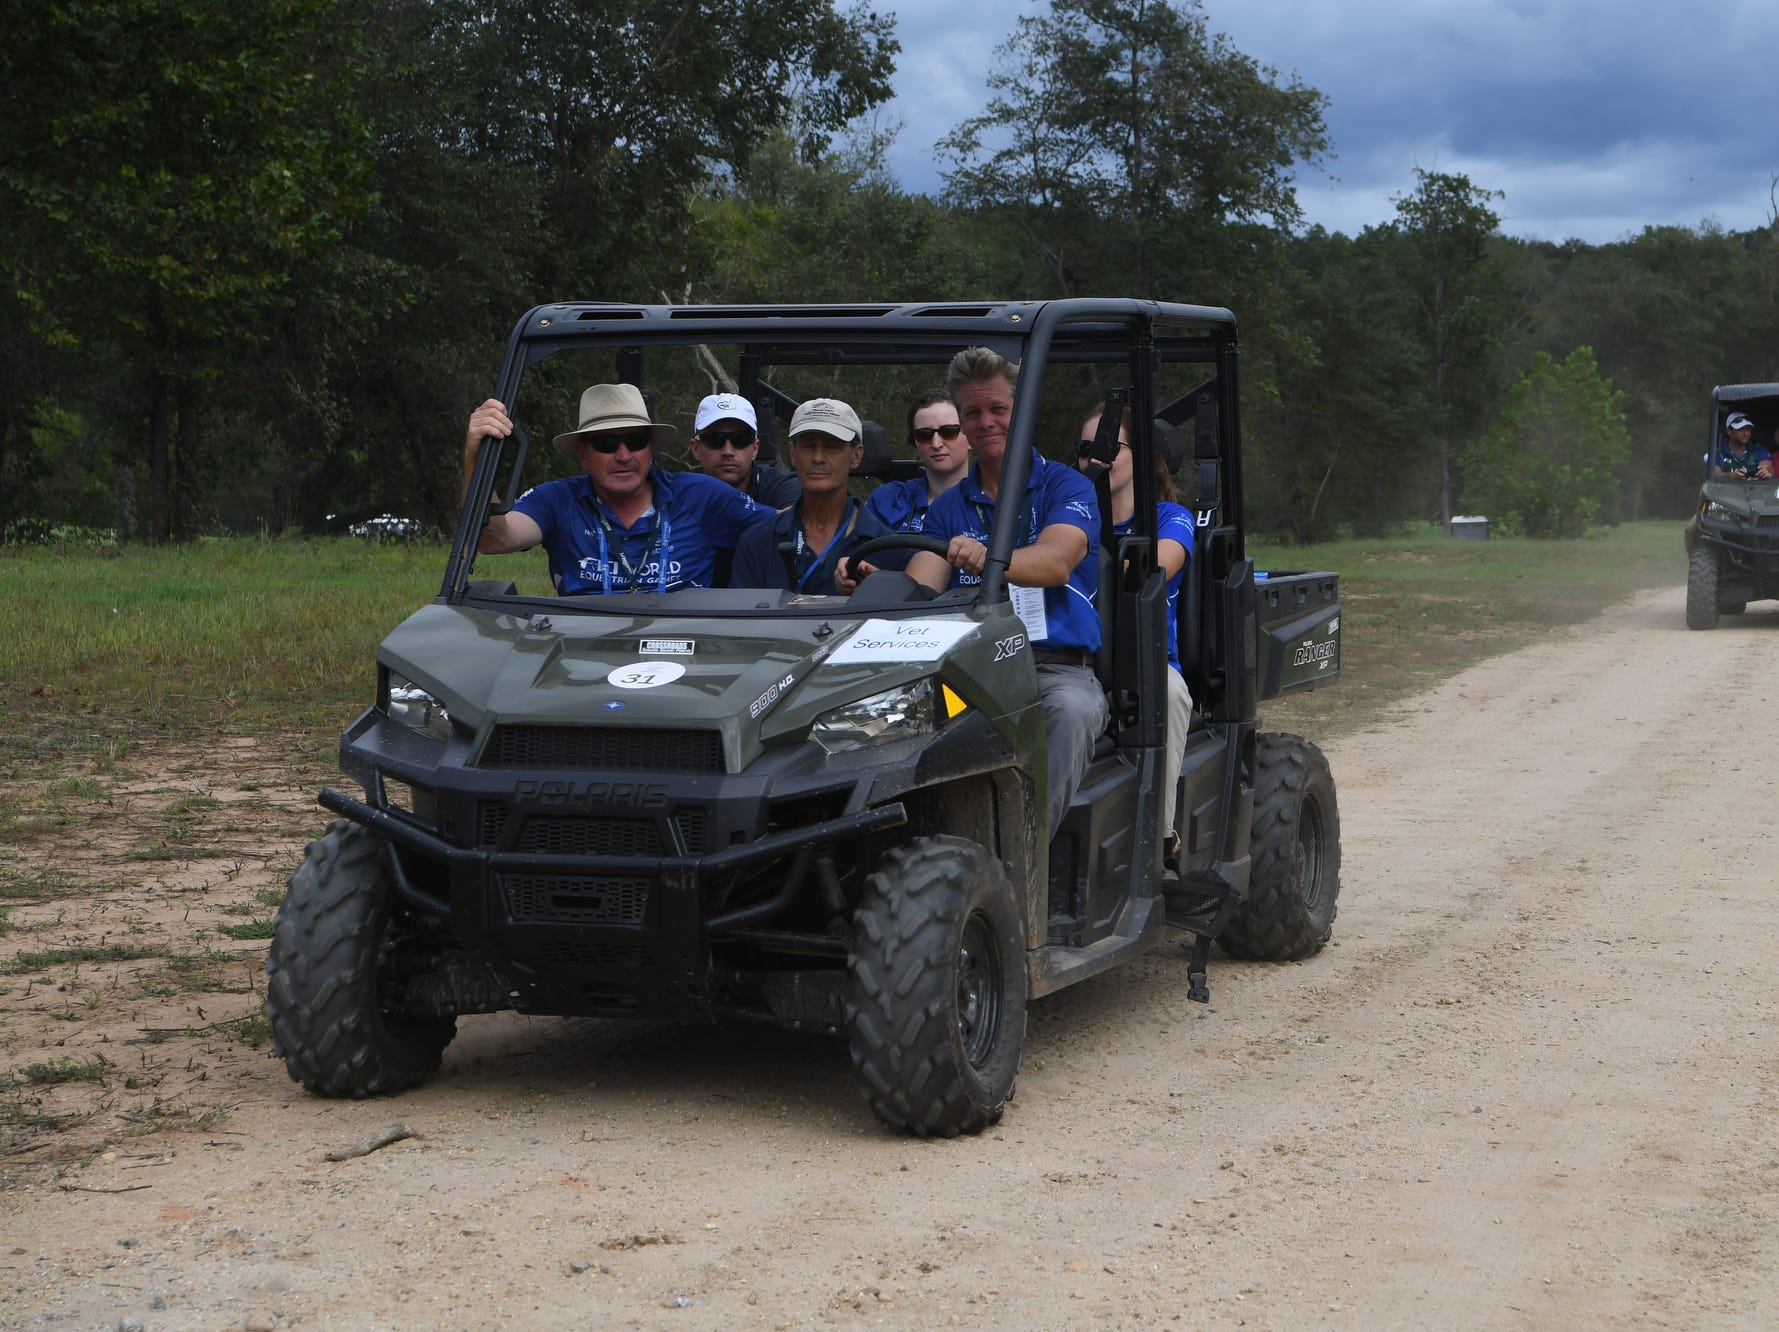 A team from vet services drives around the cross country course Sept. 14, 2018.